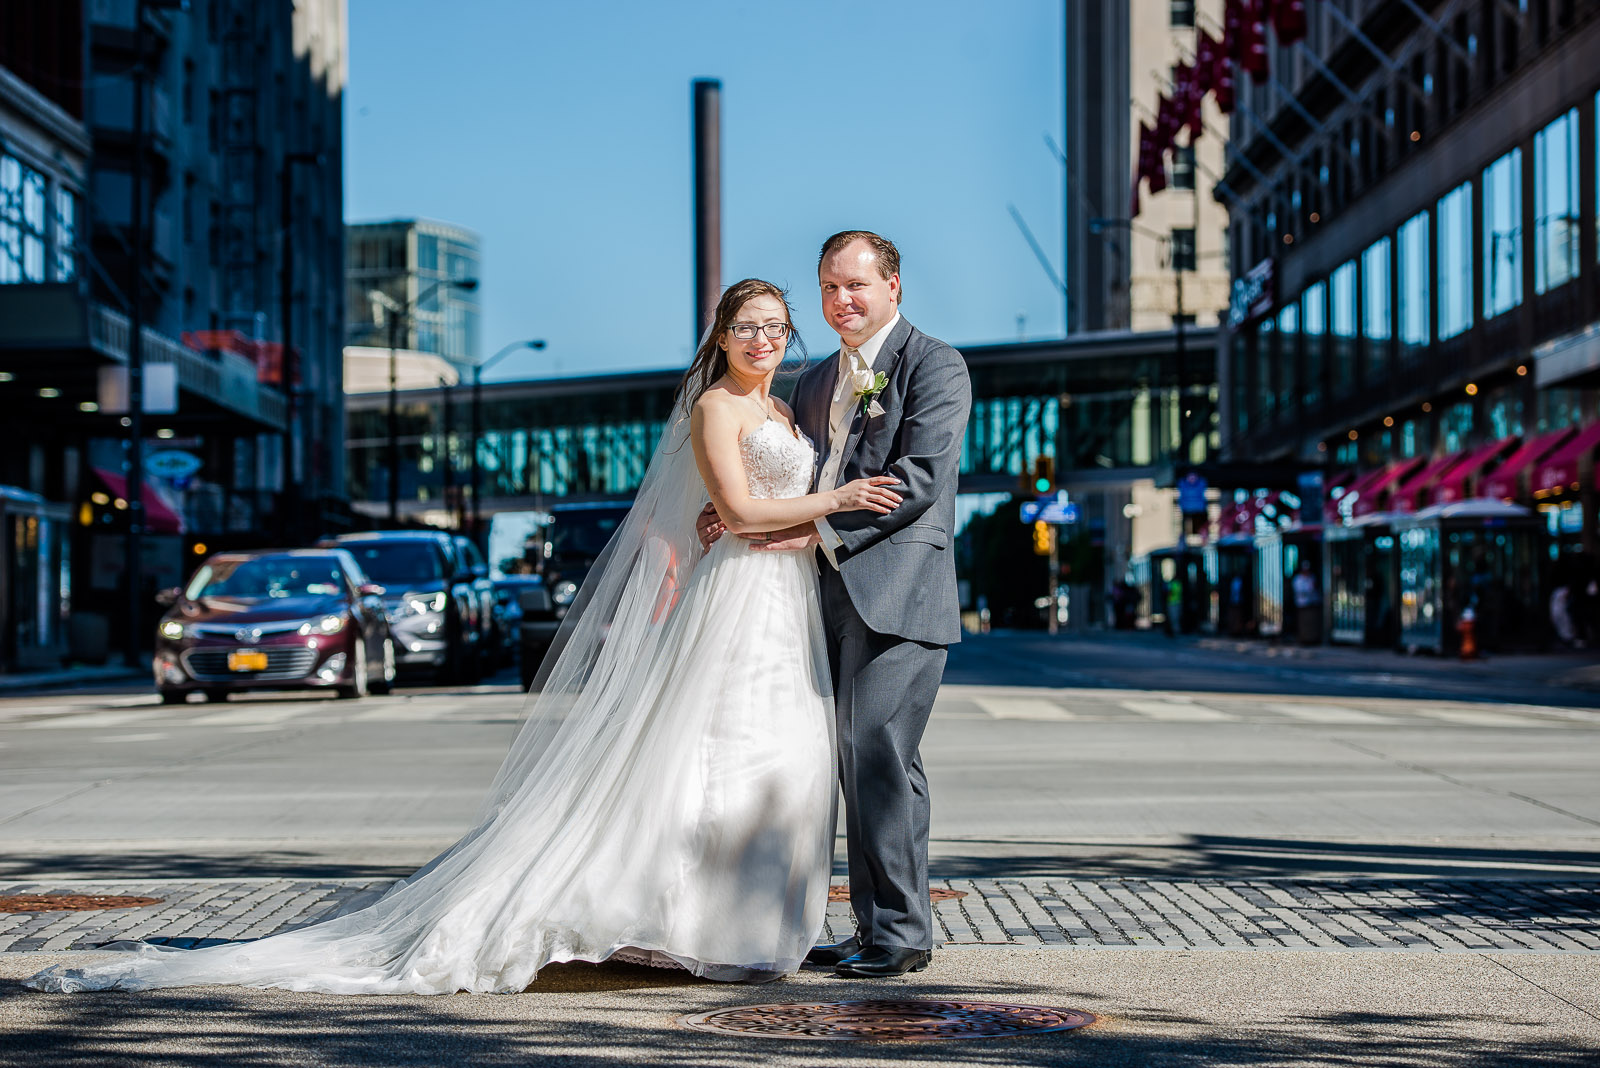 Eric_and_Christy_Photography_Blog_Julie_Adam_Wedding-26